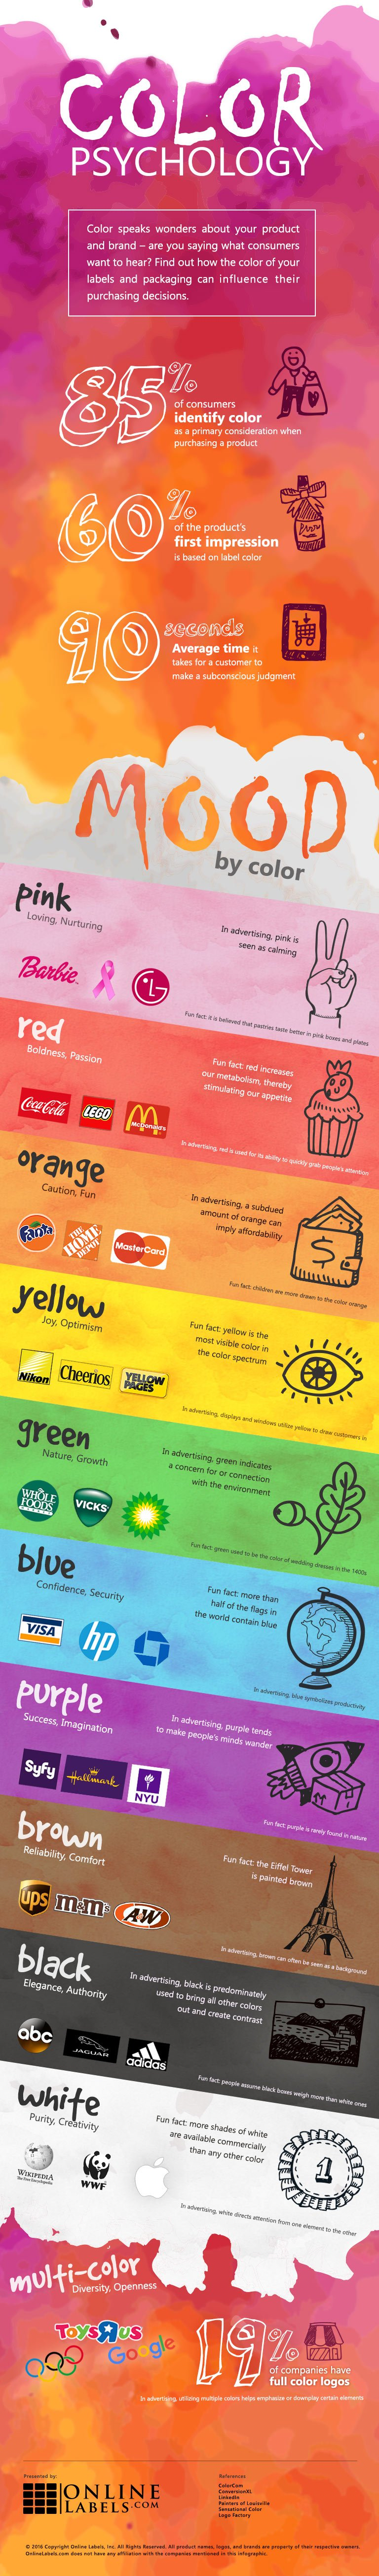 Color Psychology Infographic.